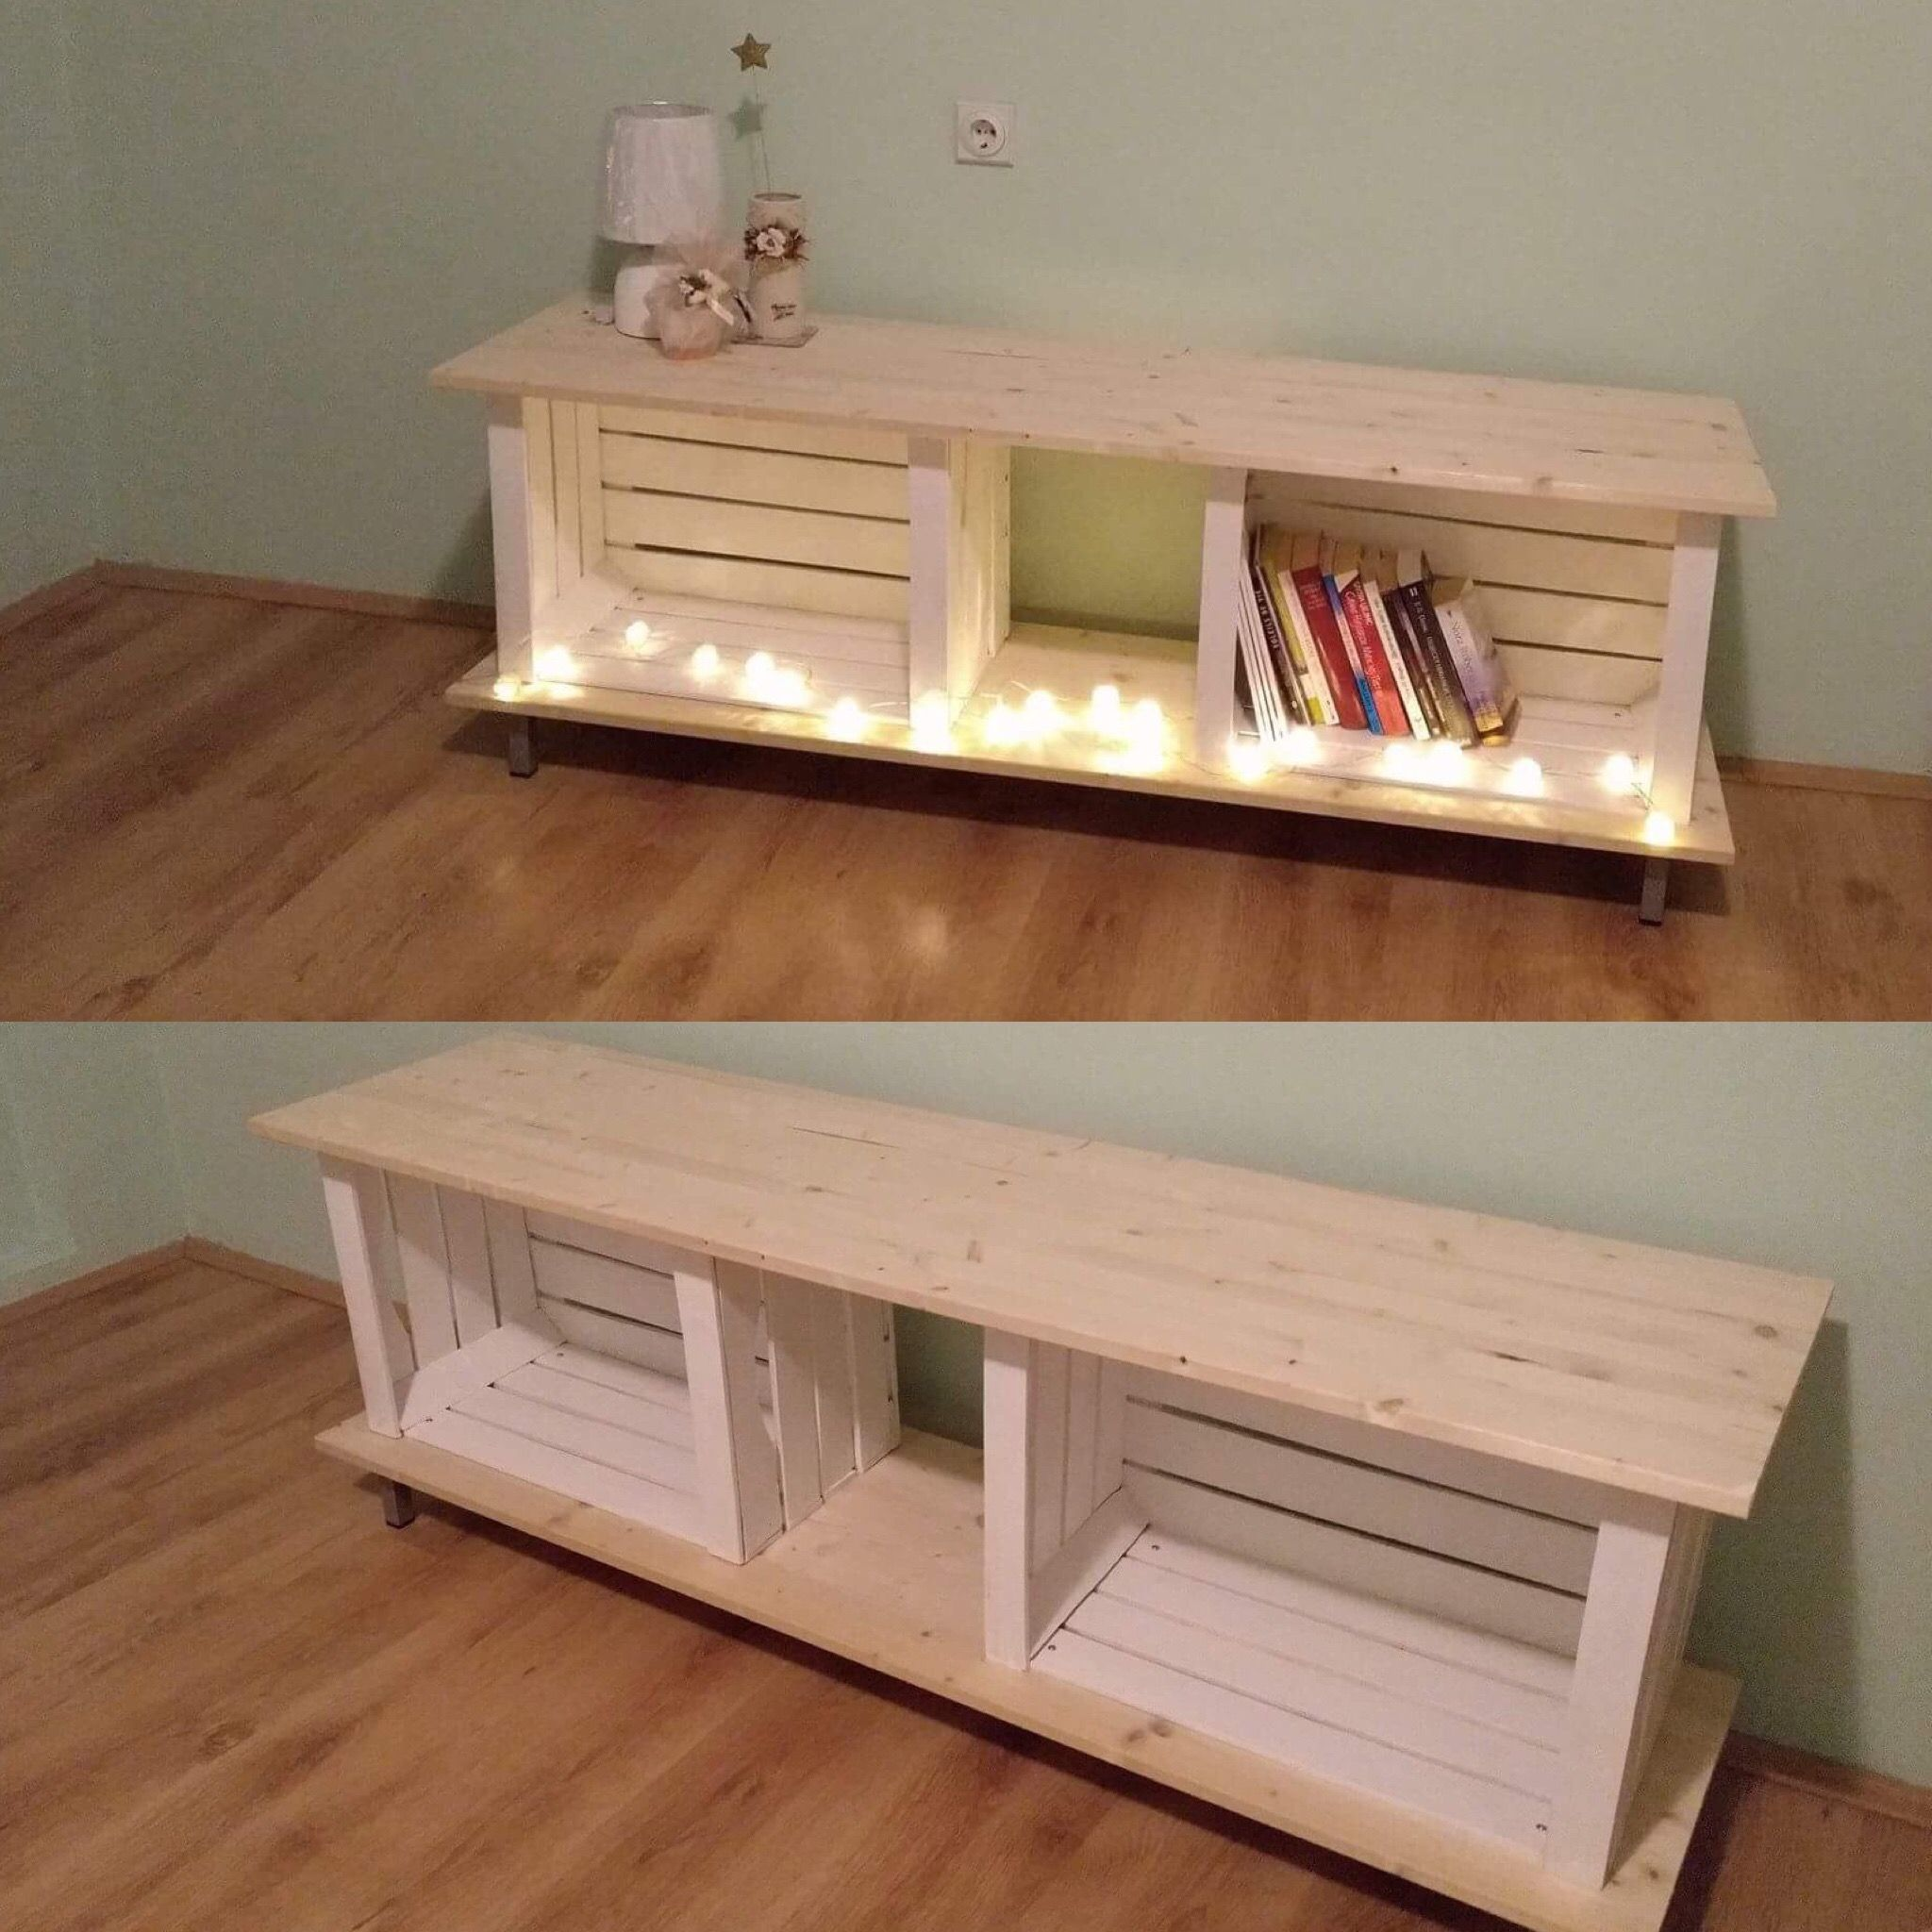 Our first DIY project. Wooden crates Pinterest inspired tv